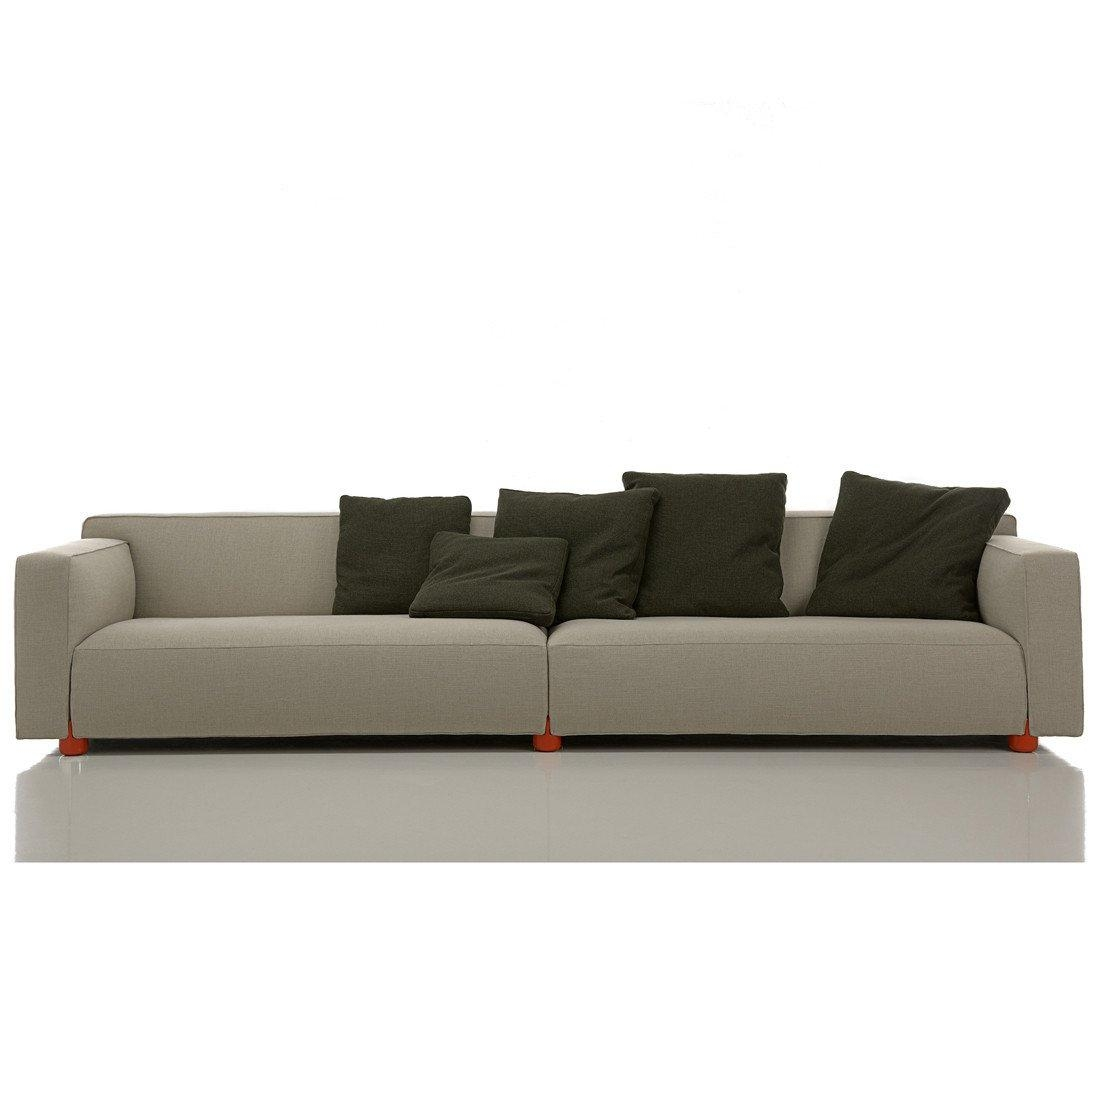 Barber Osgerby 4 Seater Sofaedward Barber And Jay Osgerby — Haus® In Four Seat Sofas (Image 7 of 20)